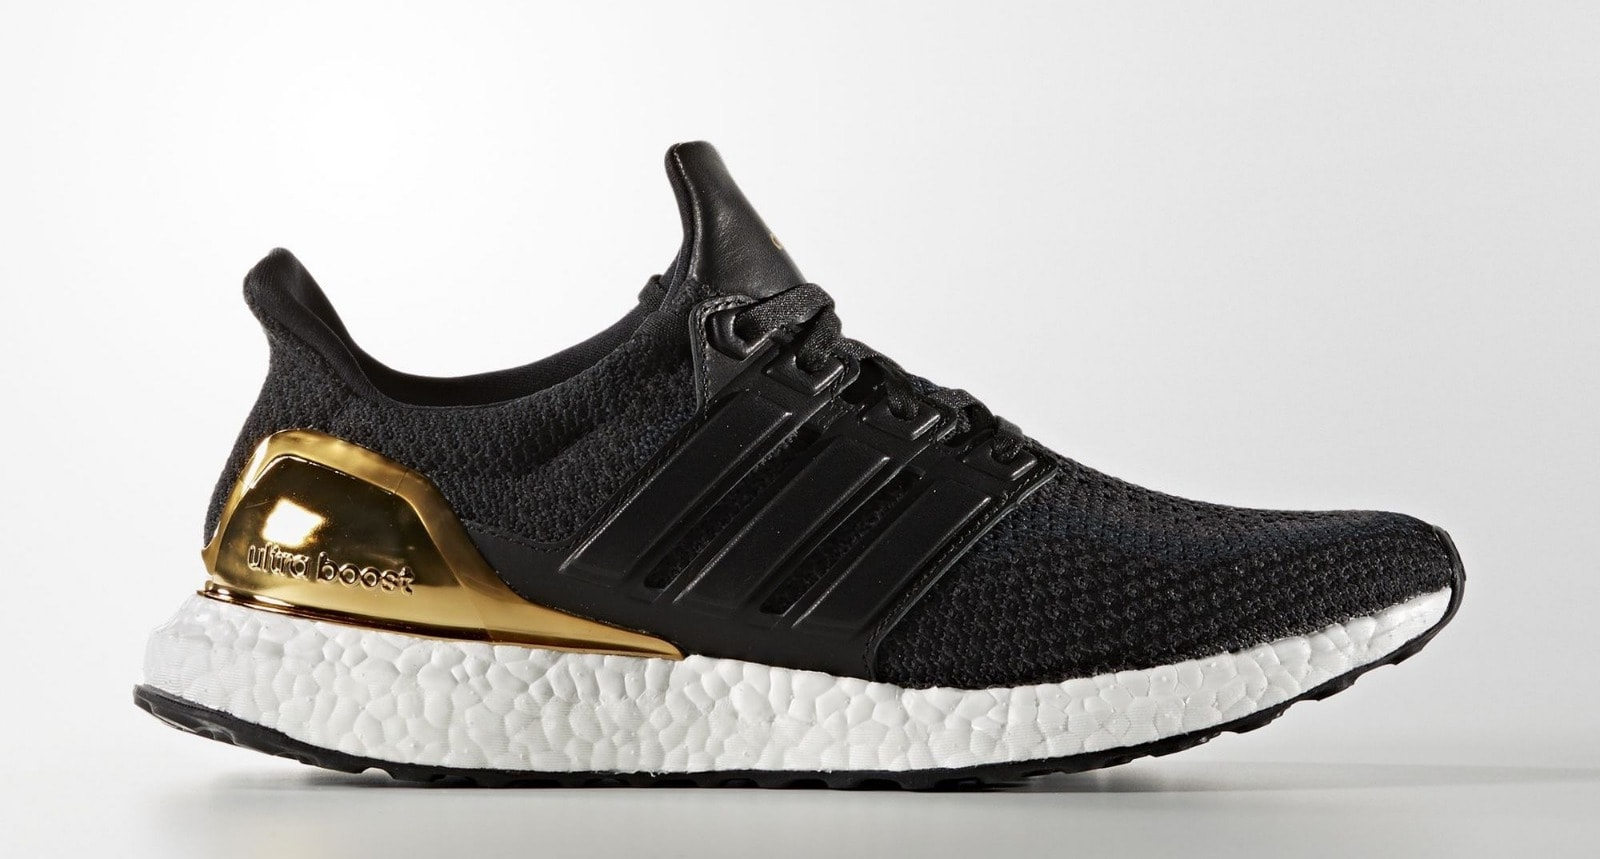 f427968333d66e adidas  recent string of Ultra Boost re-releases has been a blessing for  many Three Stripes collectors. However